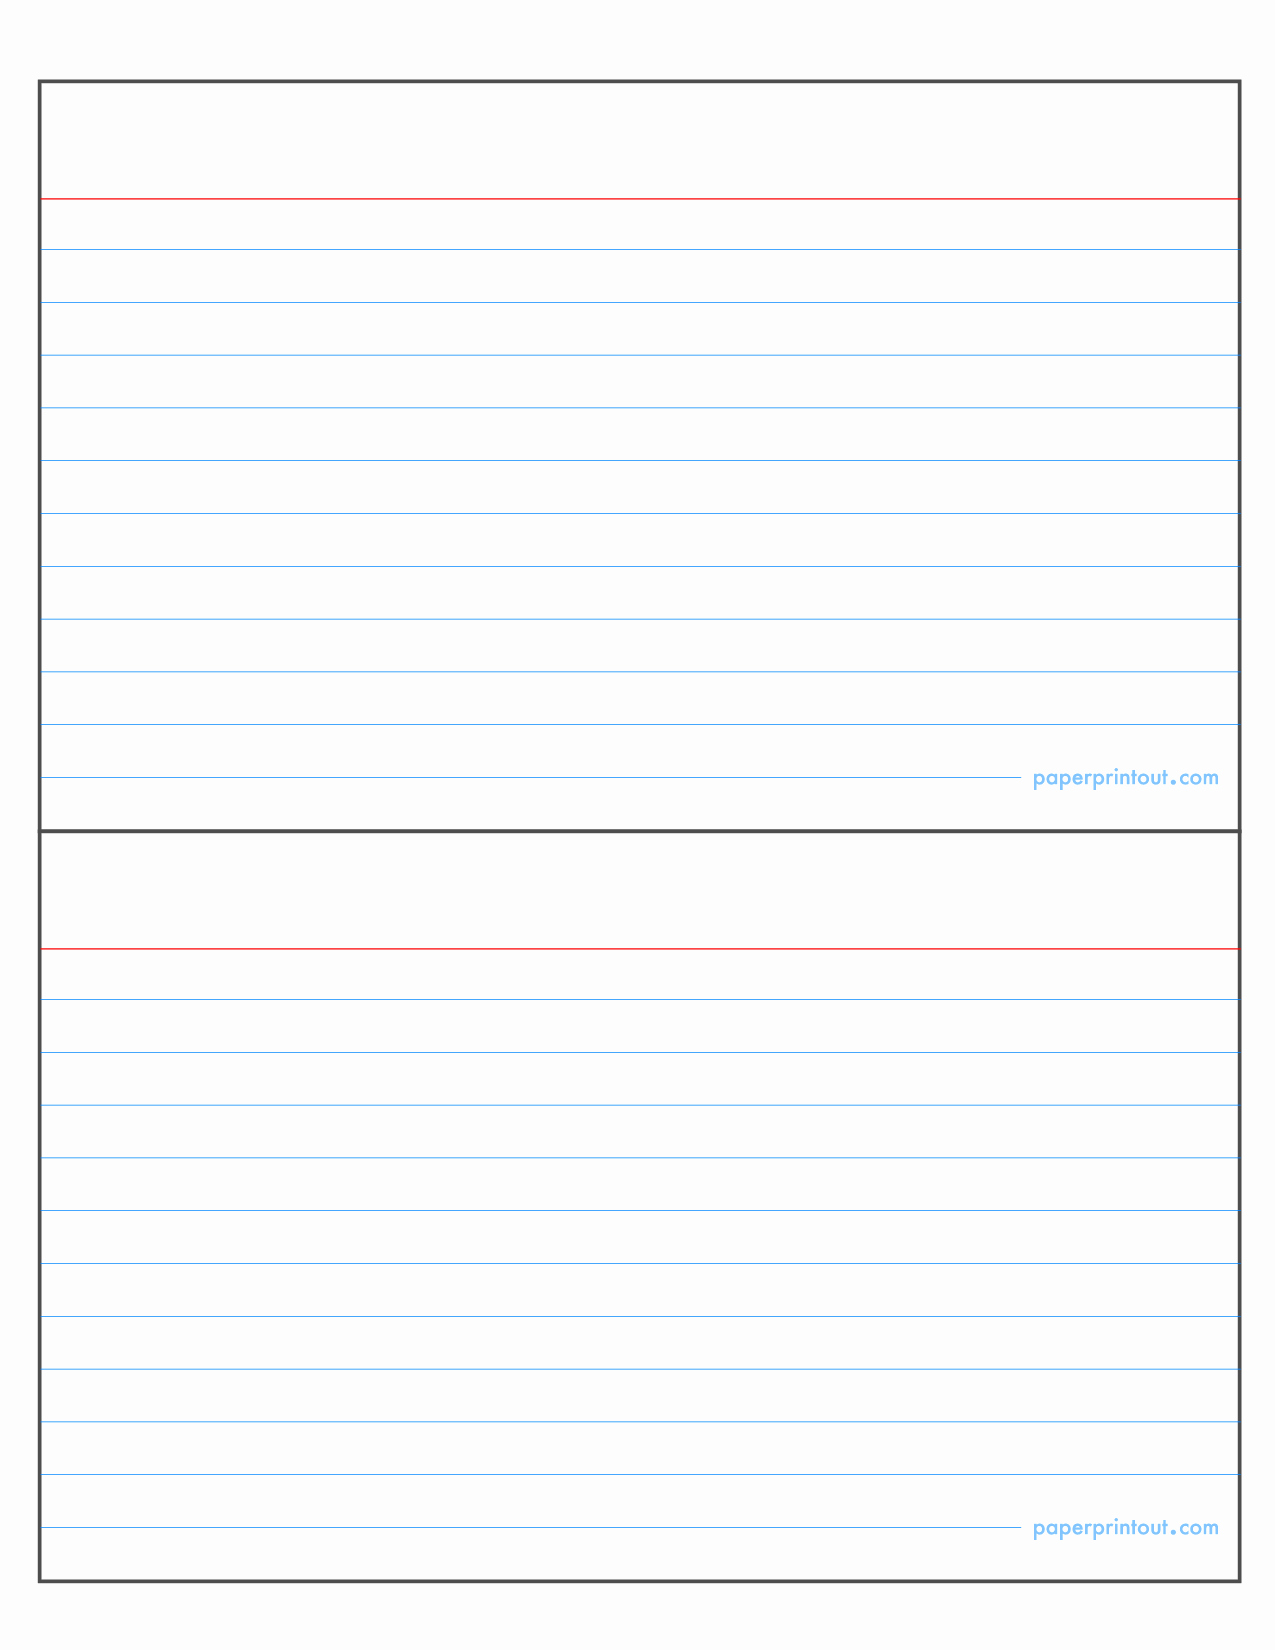 Note Card Template Free Awesome Index Card Template